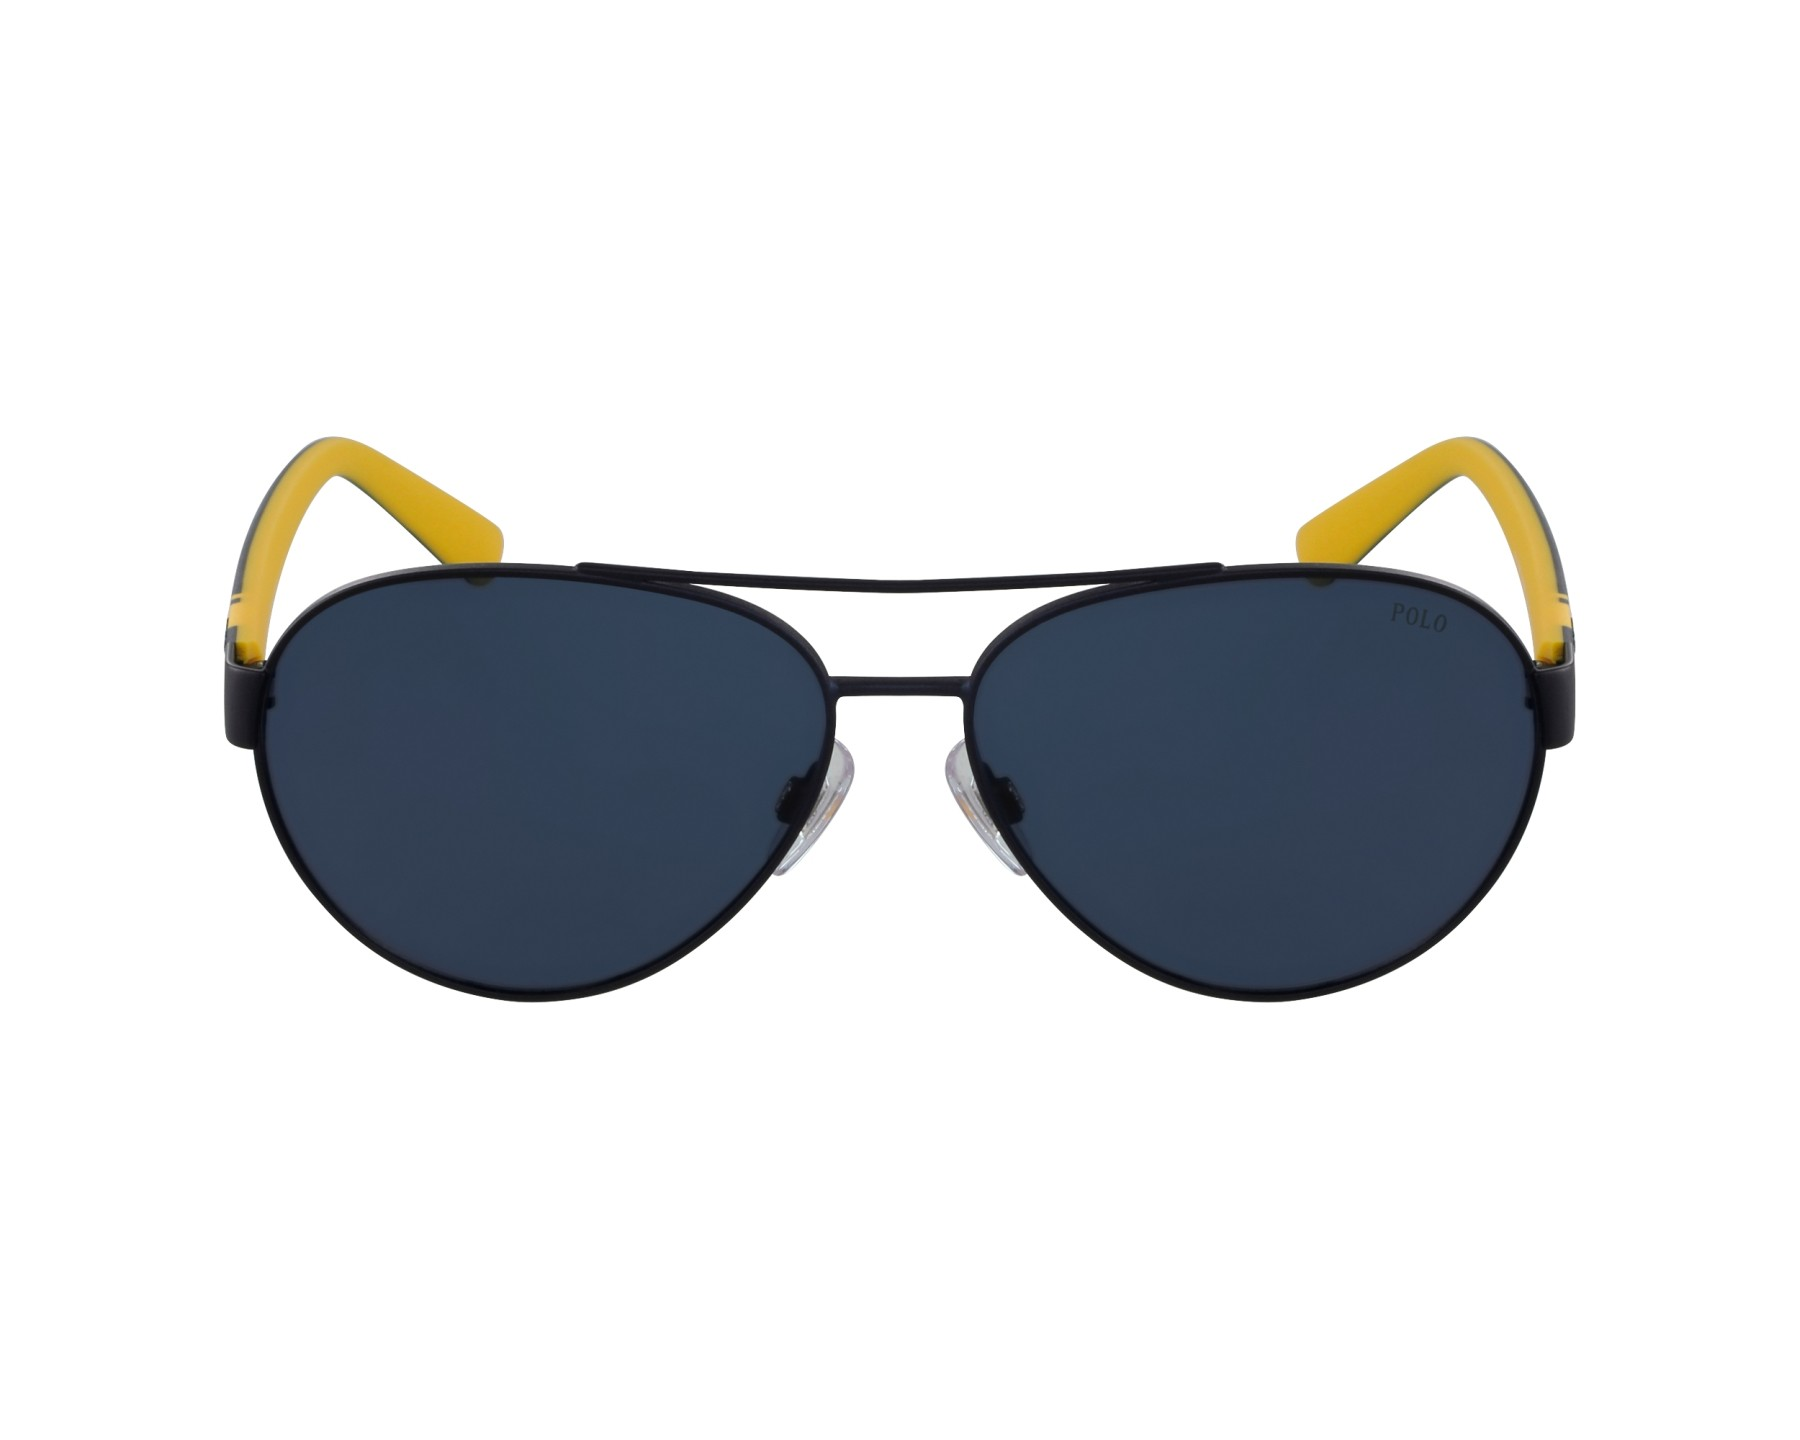 Ralph Lauren Polarised Sunglasses  polo ralph lauren sunglasses ph3098 9119 80 61 visionet